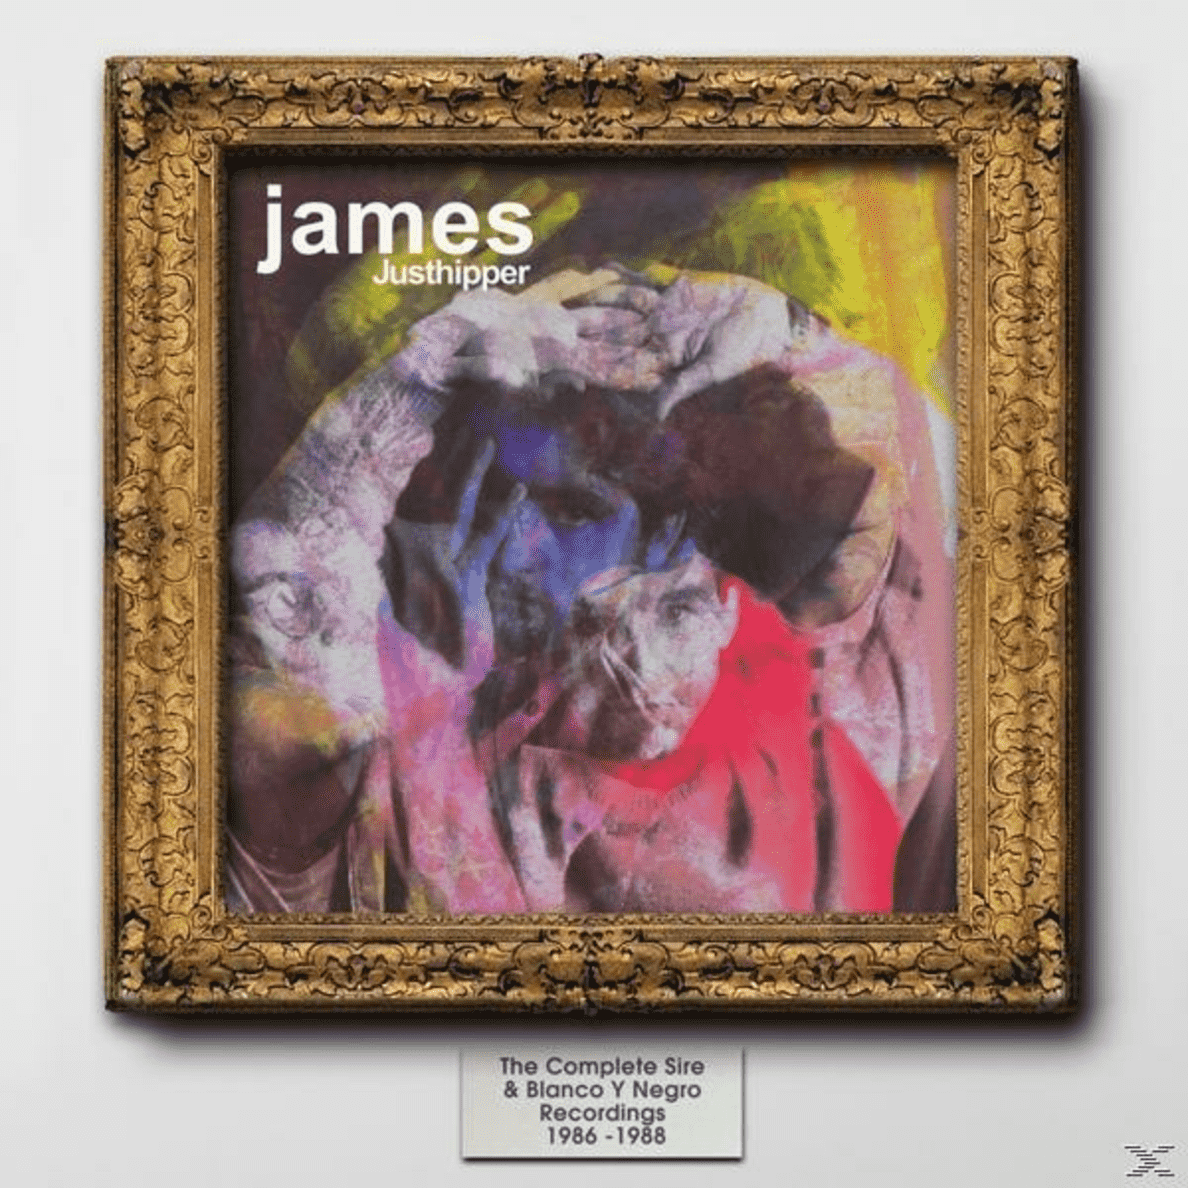 James - Justhipper-Complete Sire+Blanco Y Negro Recordings - (CD)